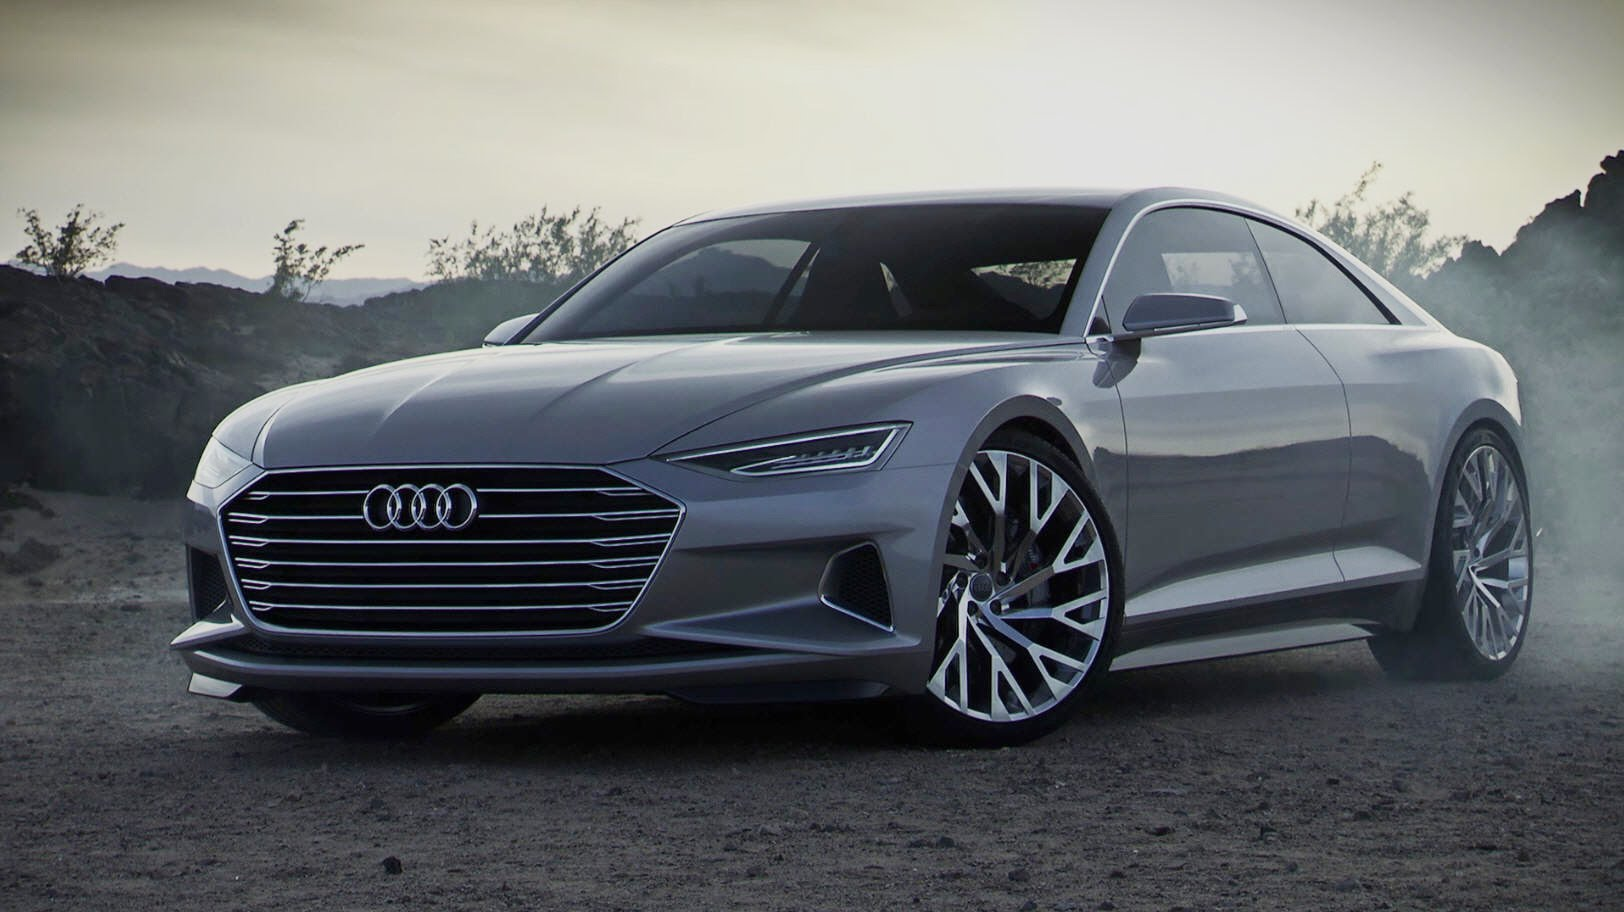 2018 Audi S8 Will Have 580 Hp New A8 W12 Coming With More